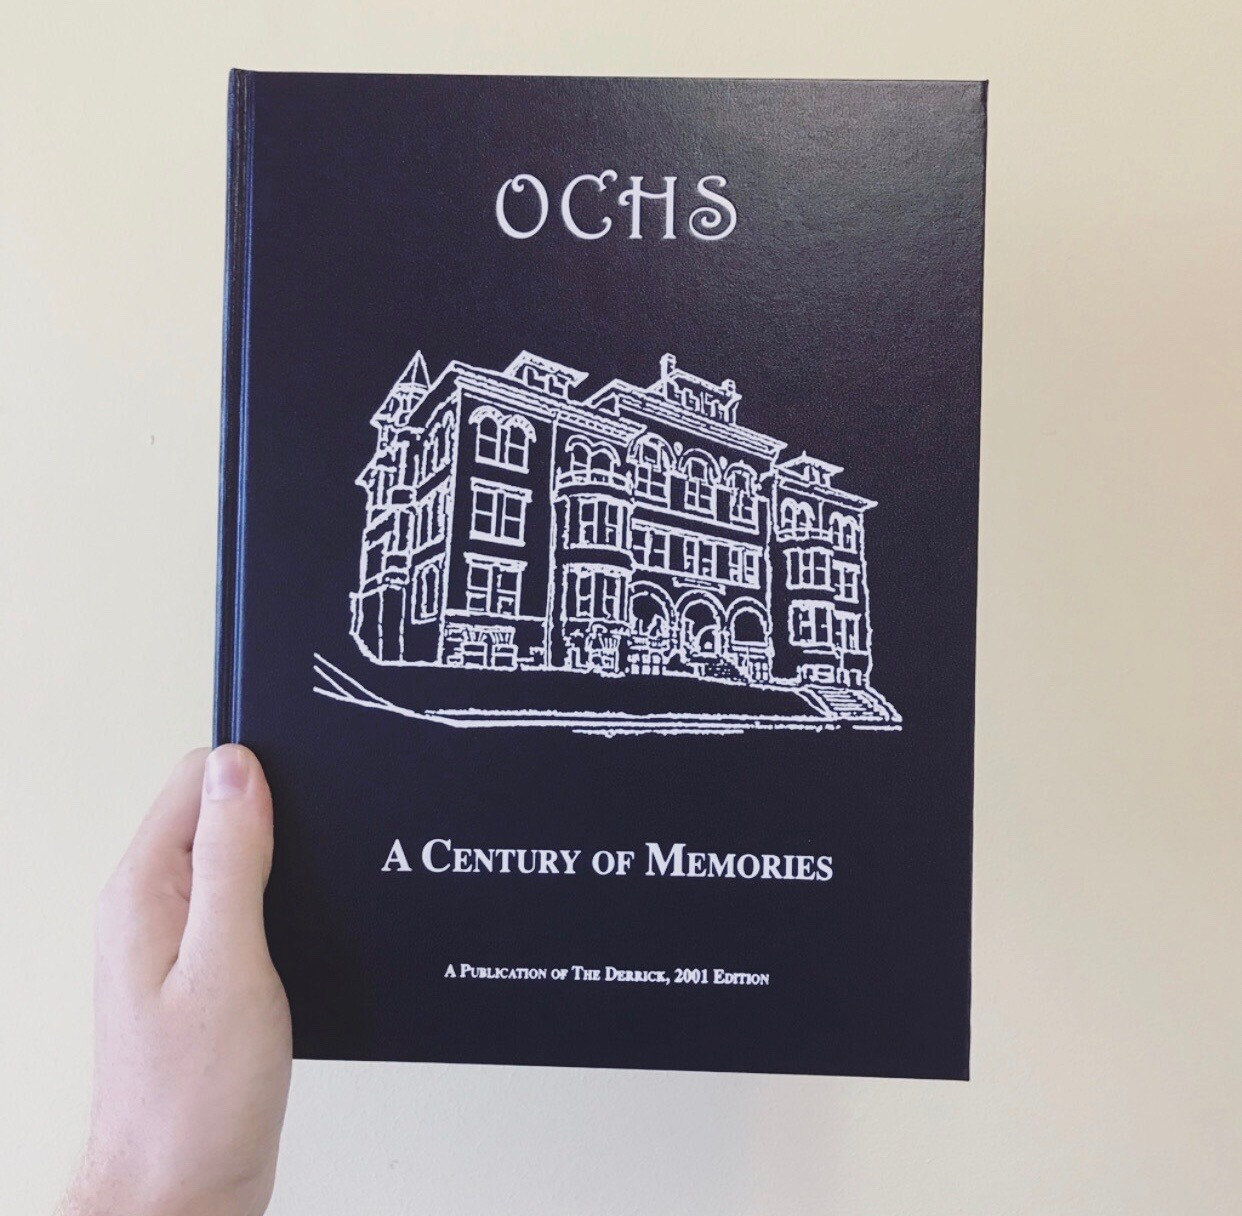 OCHS: A Century of Memories